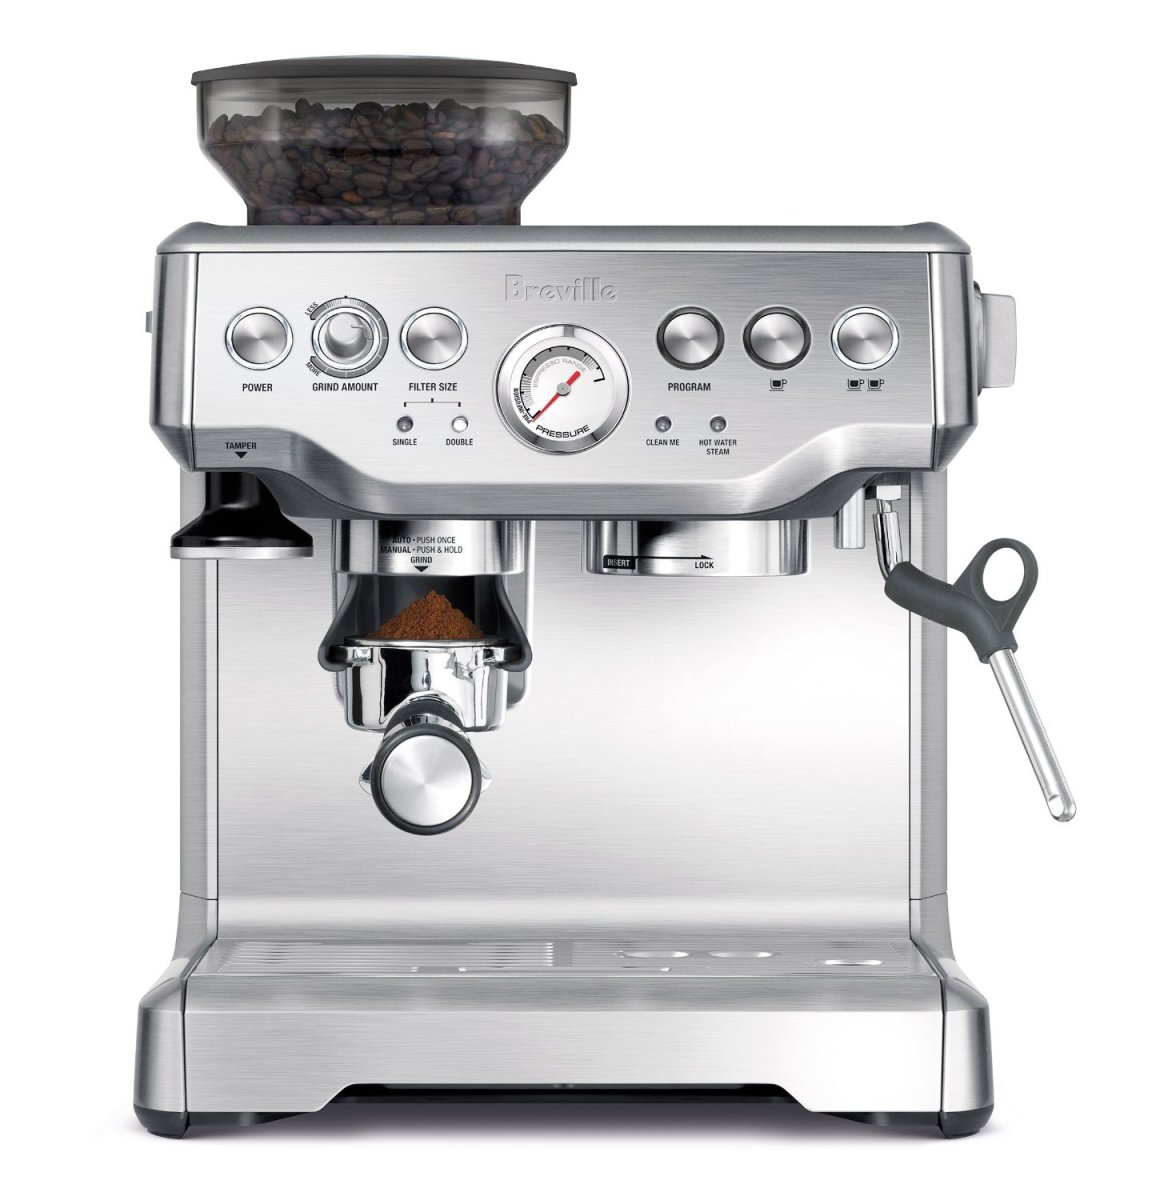 What's Wrong With the Breville BES870XL Espresso Machine?